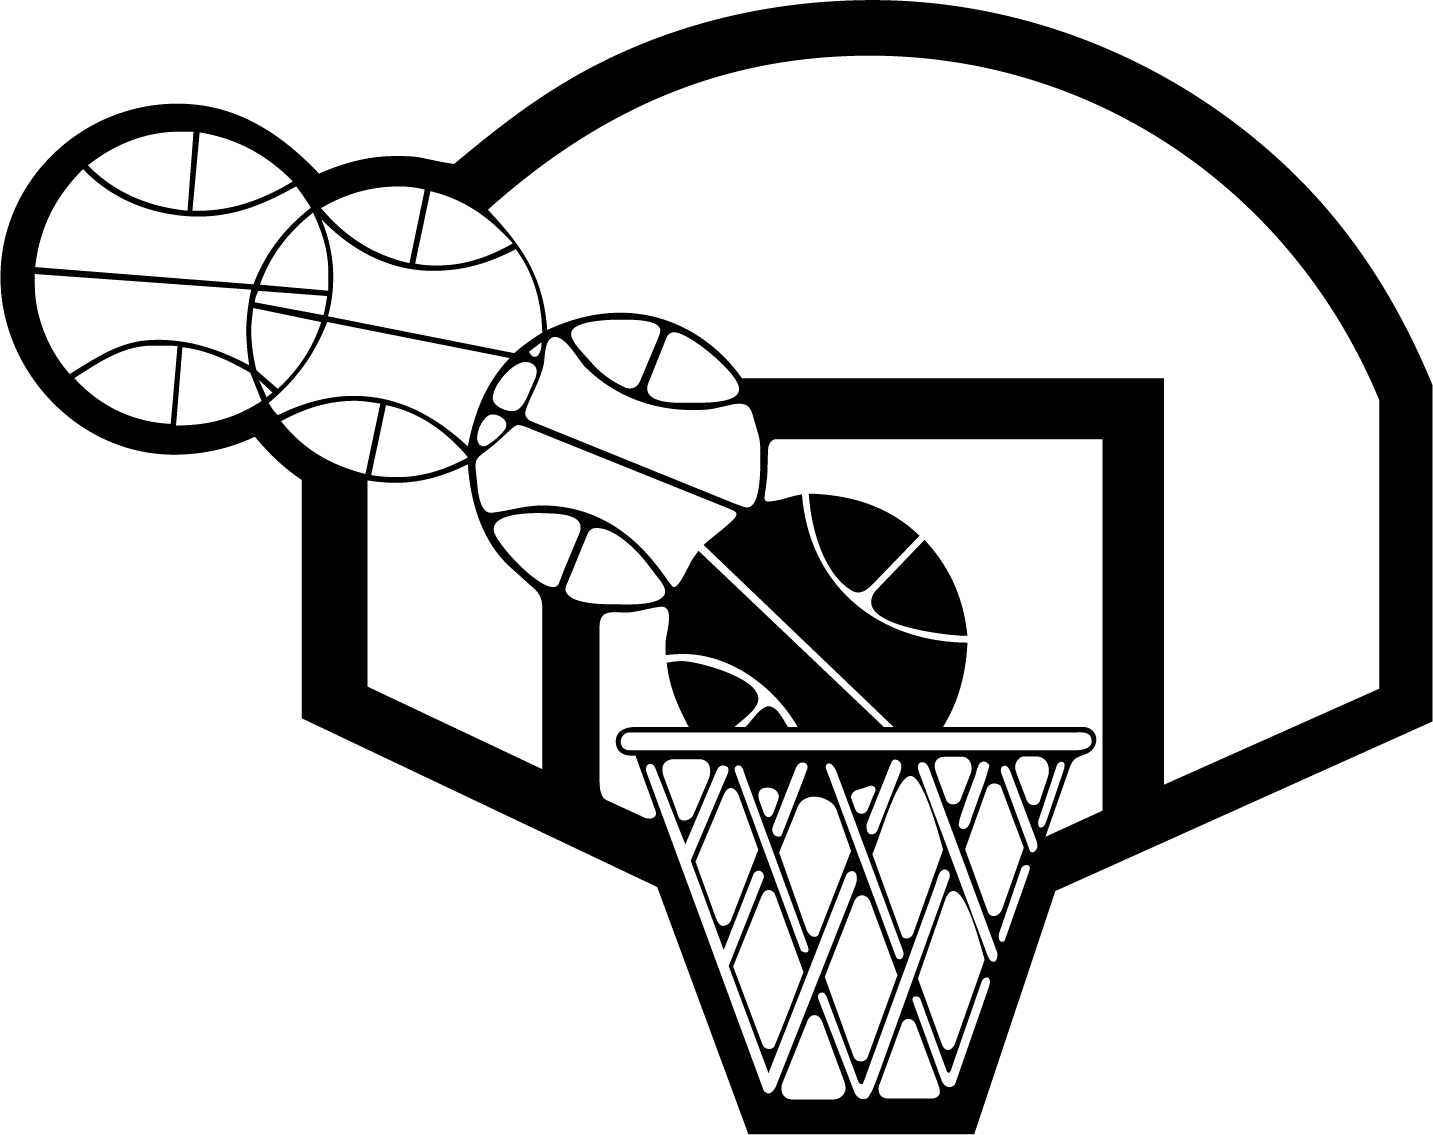 Basketball court clipart black and white banner black and white library North Carolina Tar Heels mens basketball Backboard Clip art - White ... banner black and white library